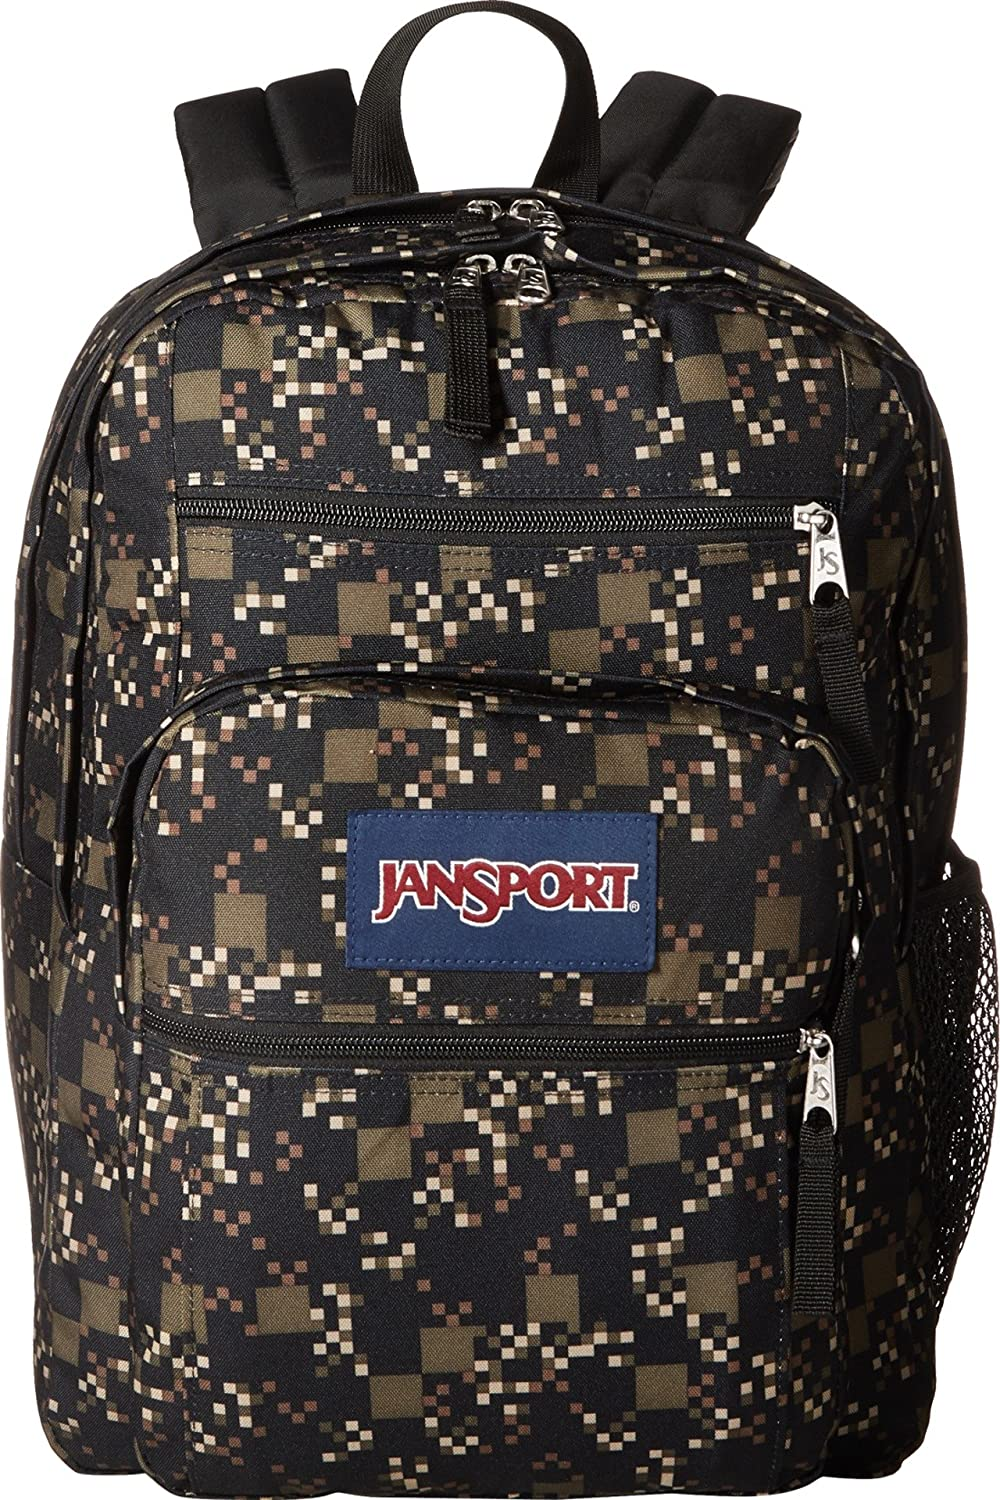 JanSport Big Student Backpack, Green Machine Digi Cube